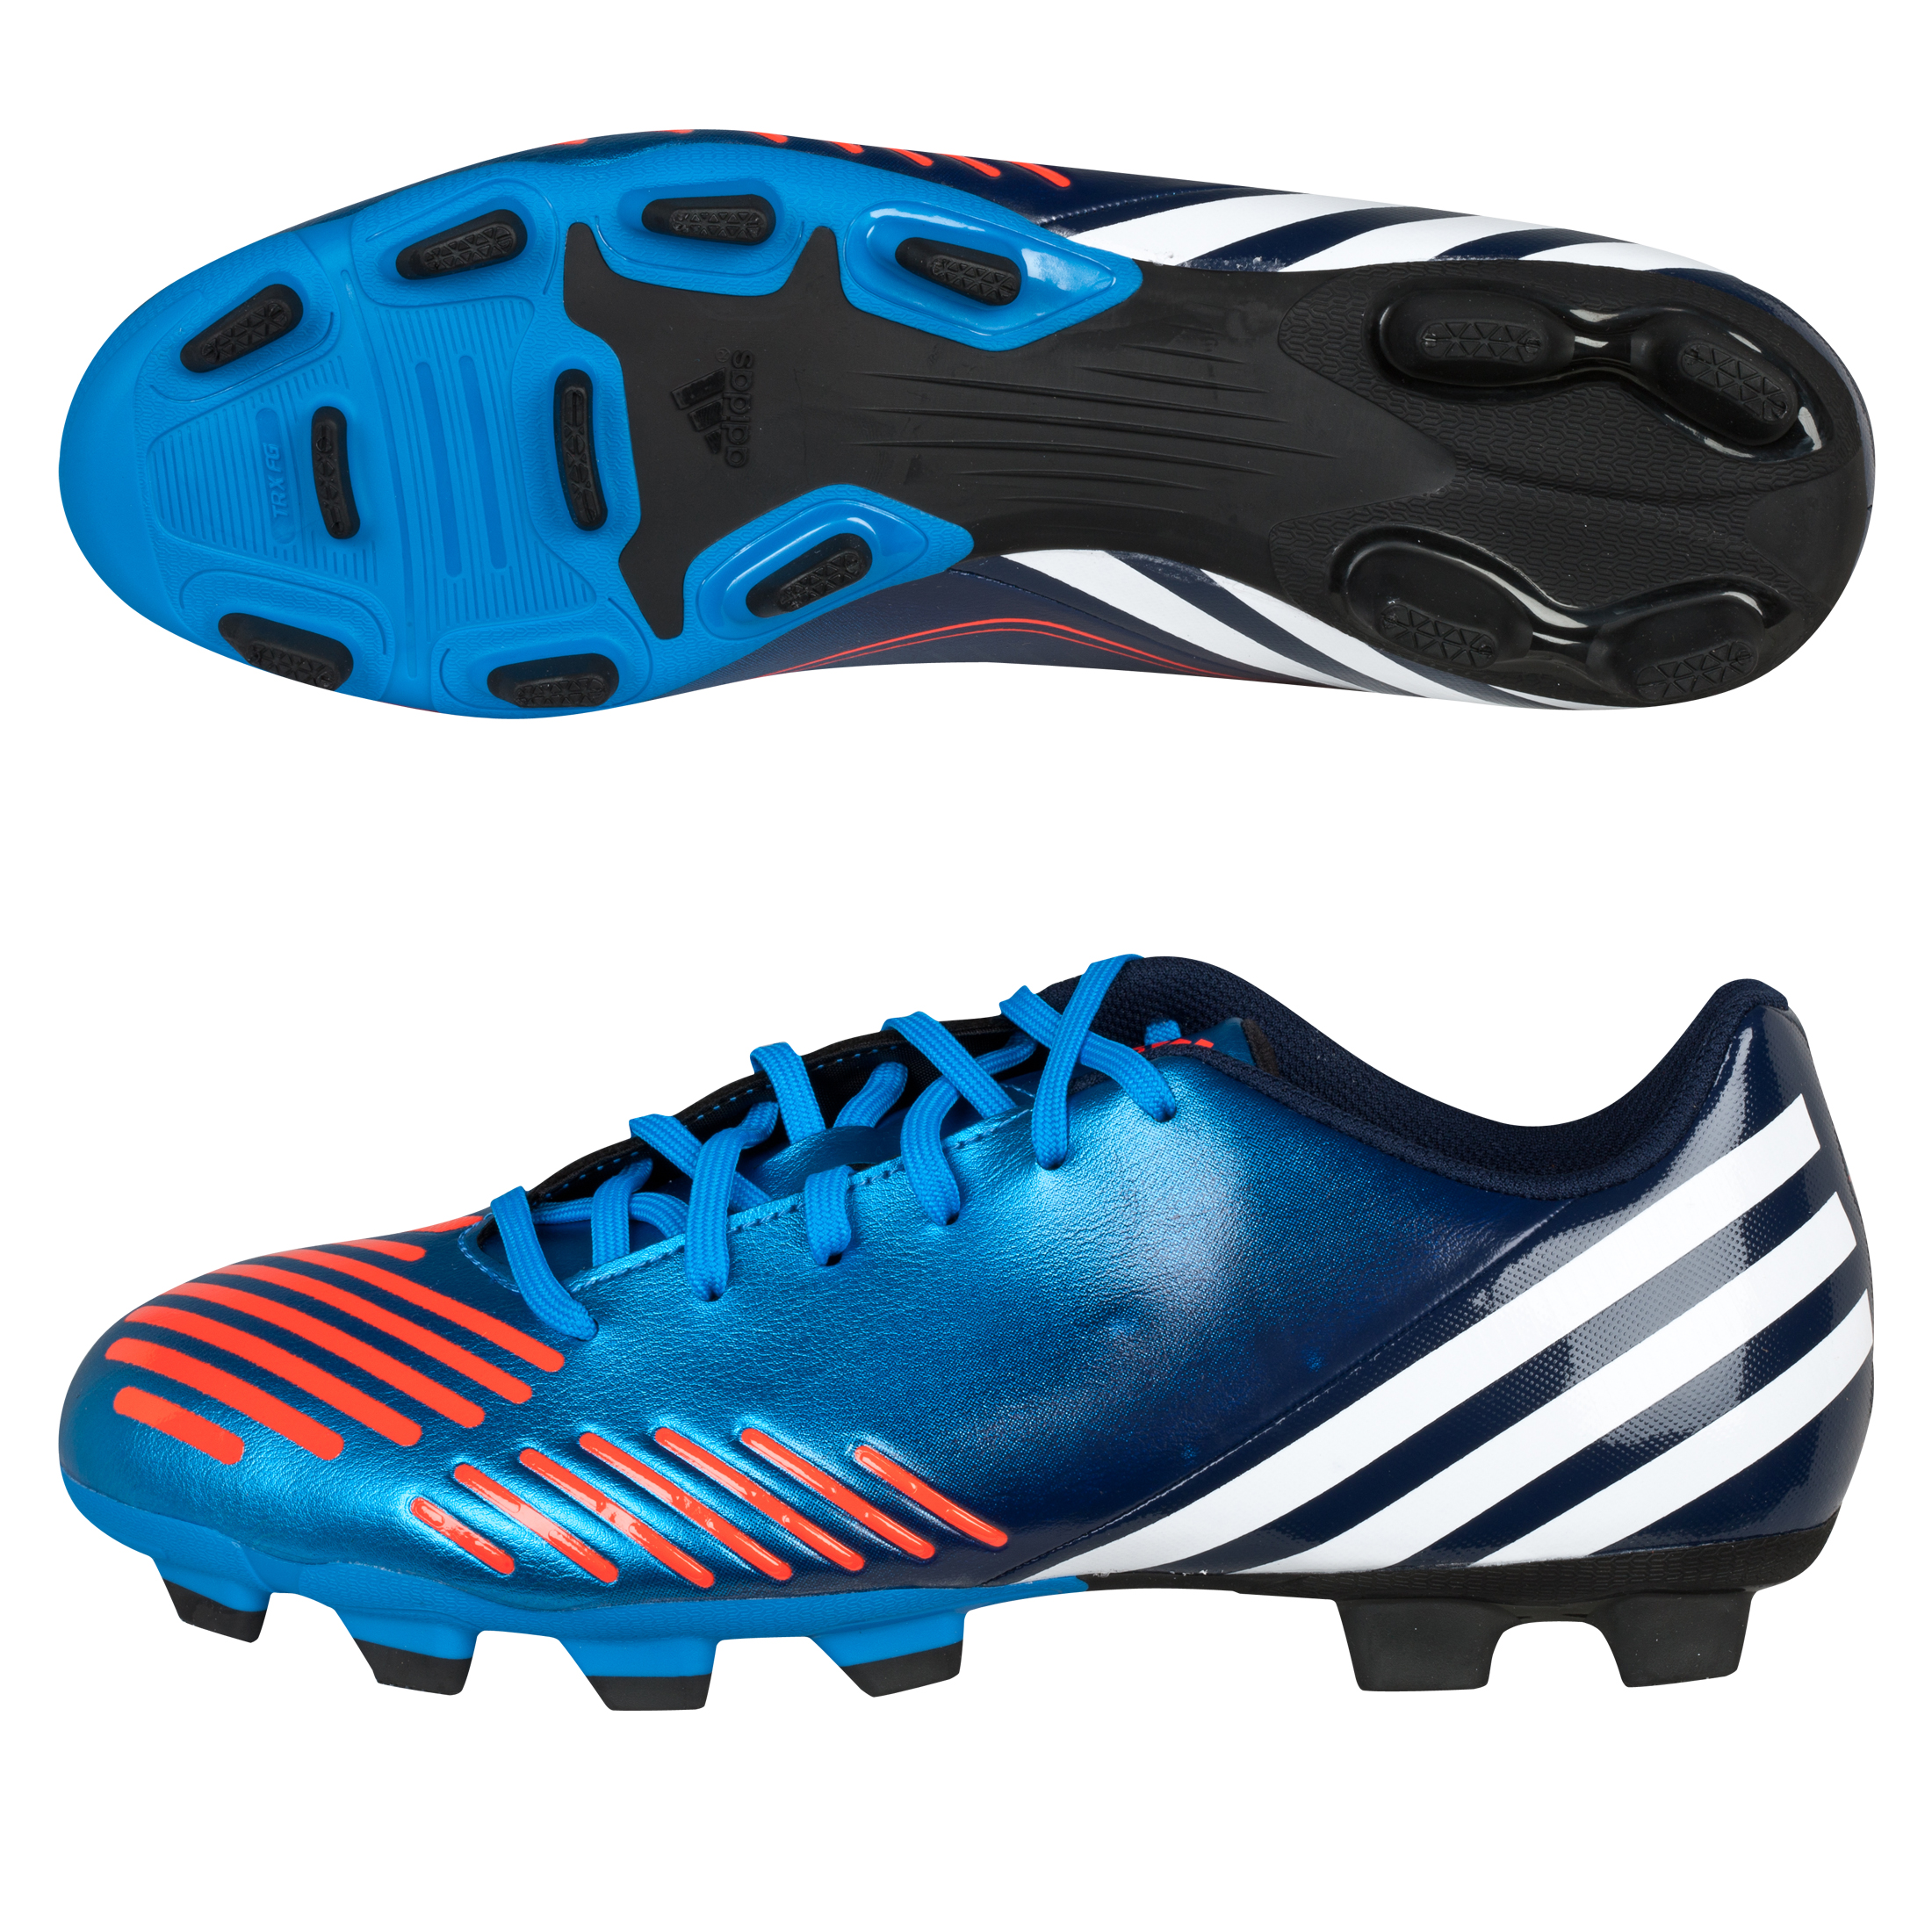 Adidas Predator LZ TRX Frim Ground Football Boots - Bright Blue/Running White/Infrared